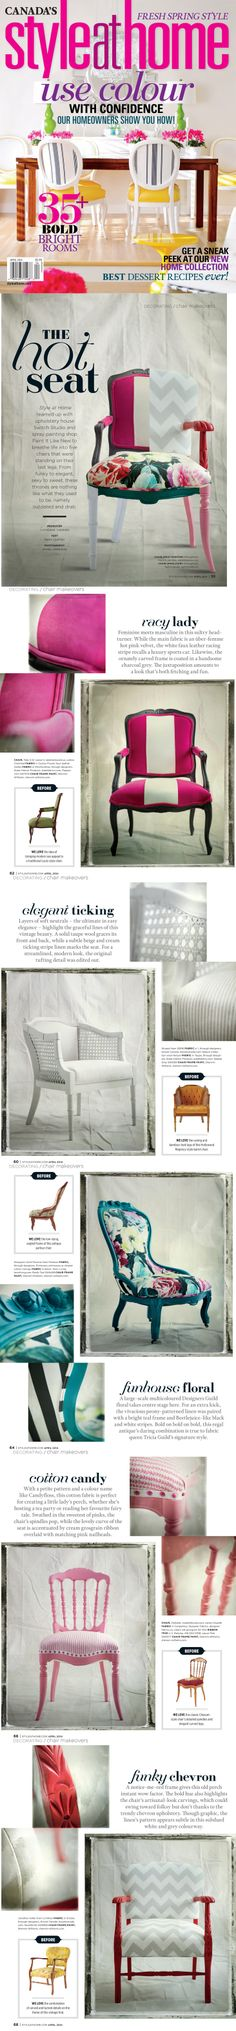 House And Home Magazine, New Words, Studio, Painted Furniture, Fabric Design, Upcycle, Upholstery, Chairs, House Styles